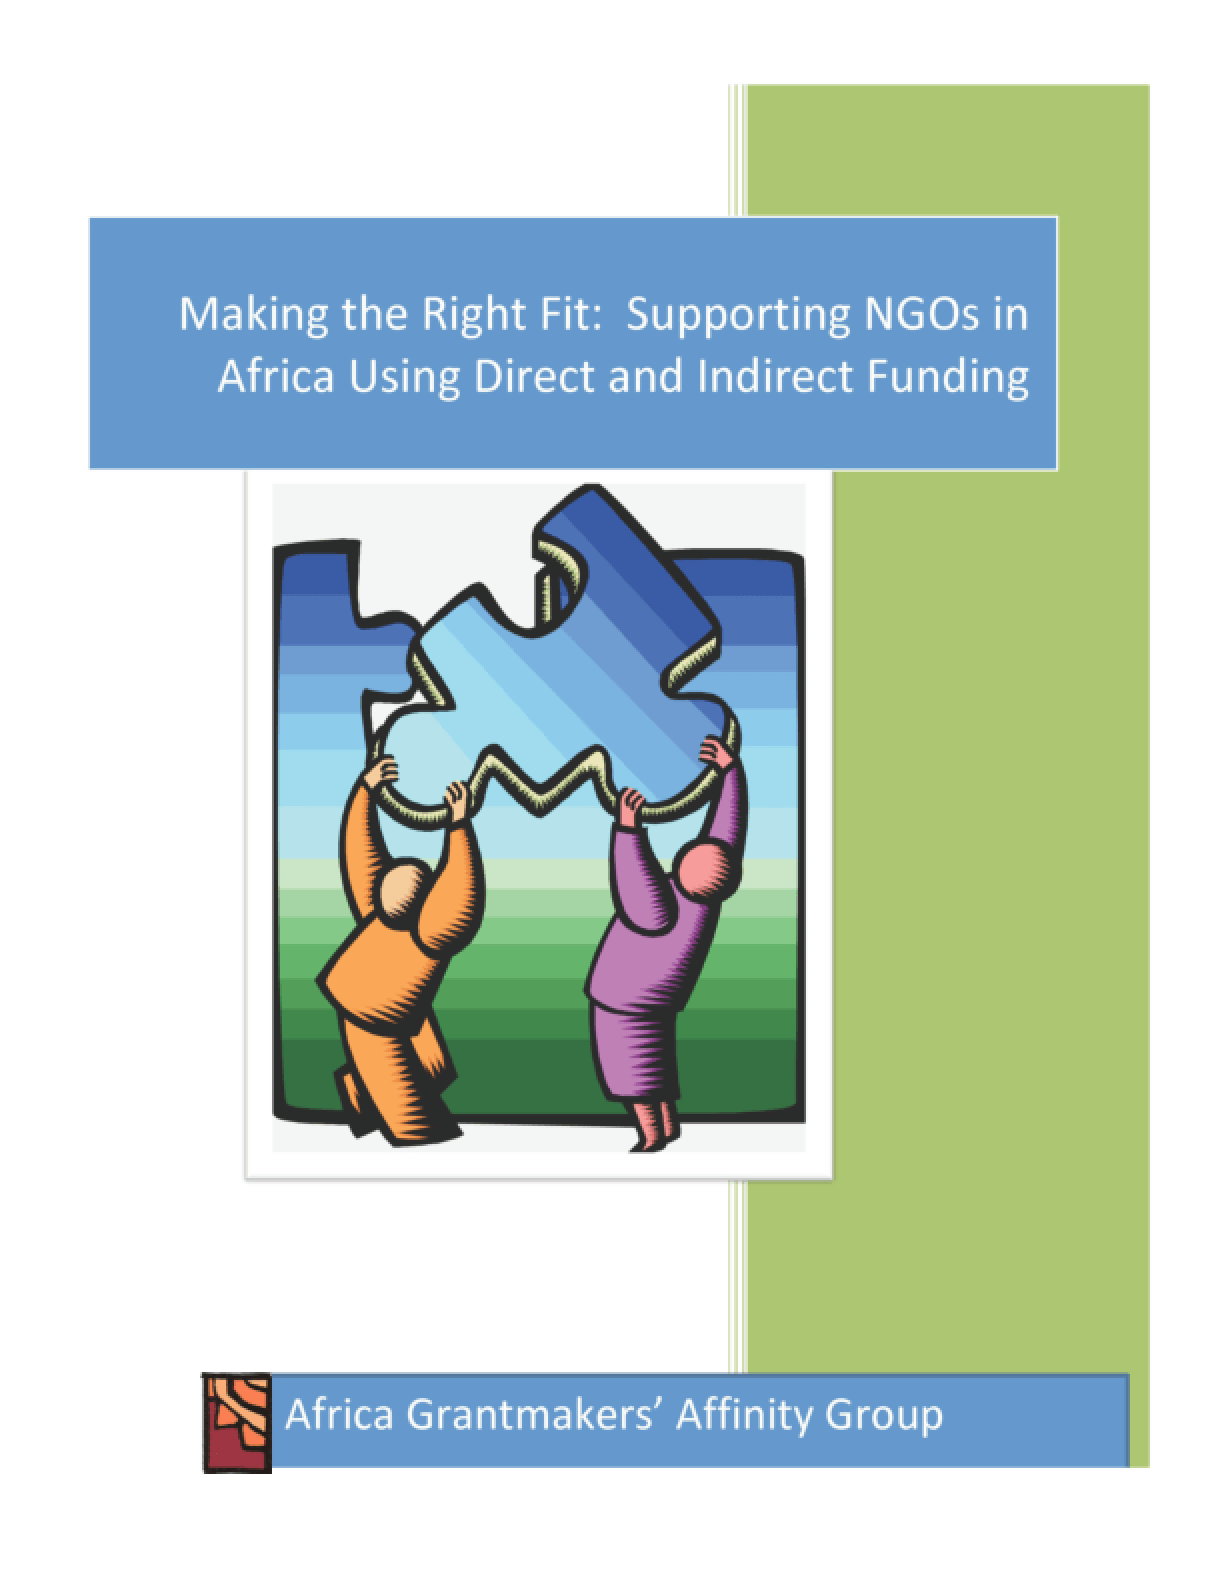 Making the Right Fit: Supporting NGOs in Africa Using Direct and Indirect Funding